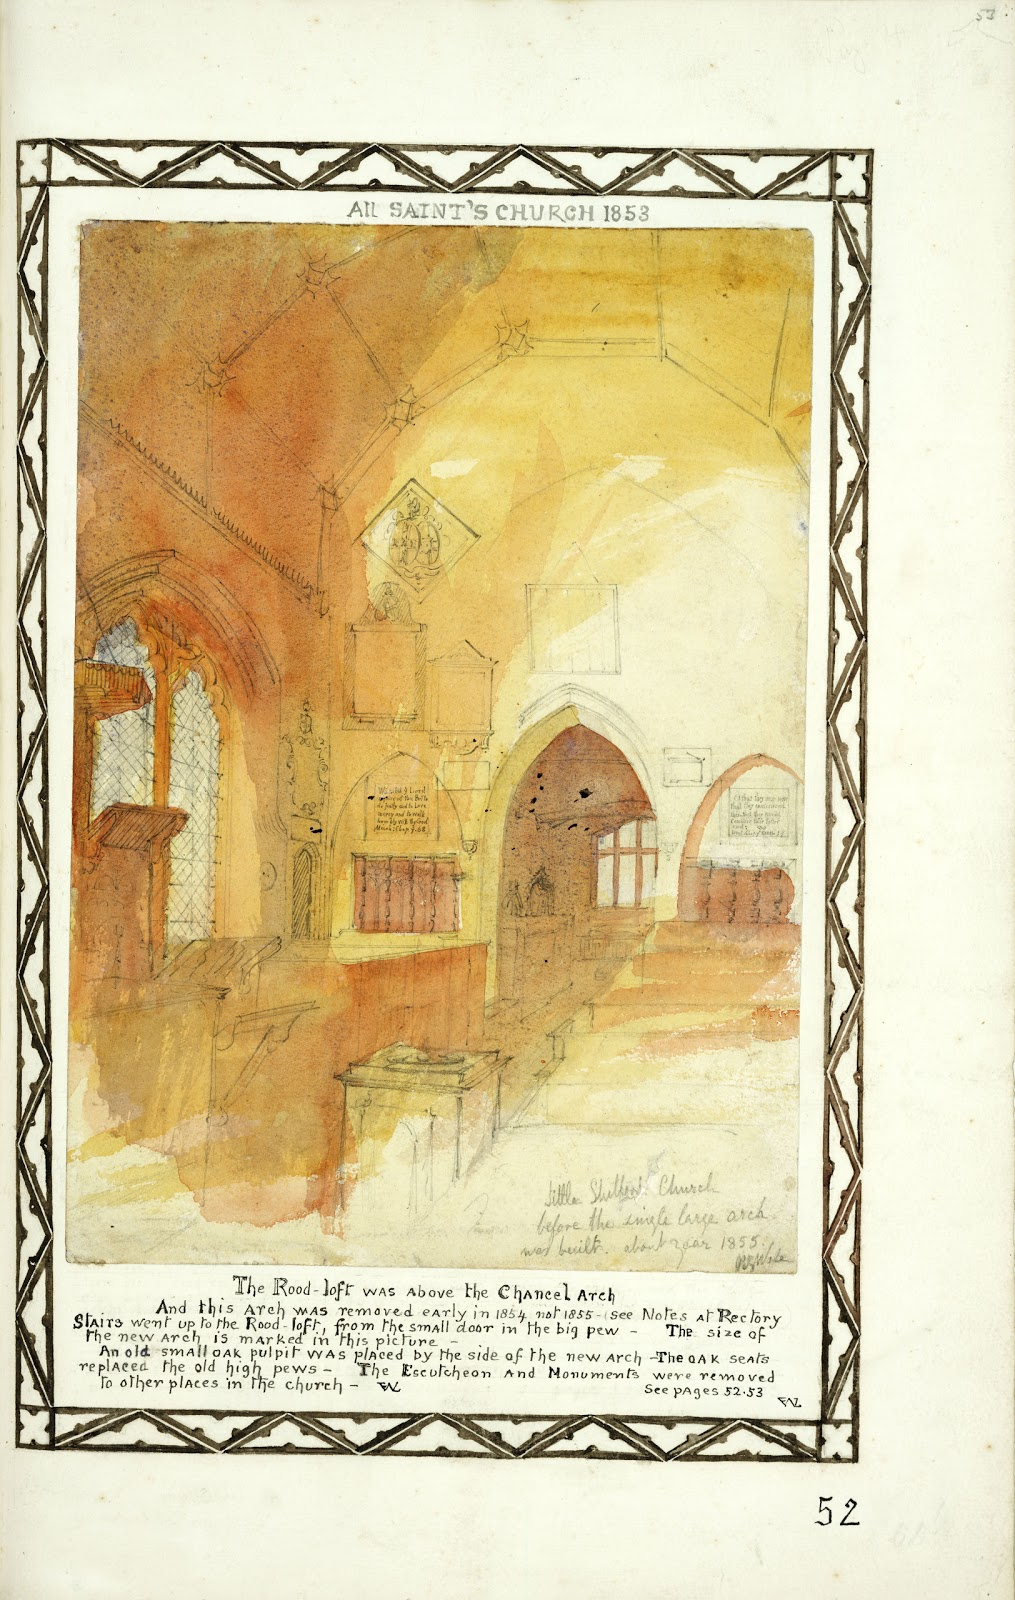 A Record of Shelford Parva by Fanny Wale P52 fo. 53, page 52: 'All Saints Church' Little Shelford coloured watercolour 'before the single large arch was built 1855', 1853. [fo.40]